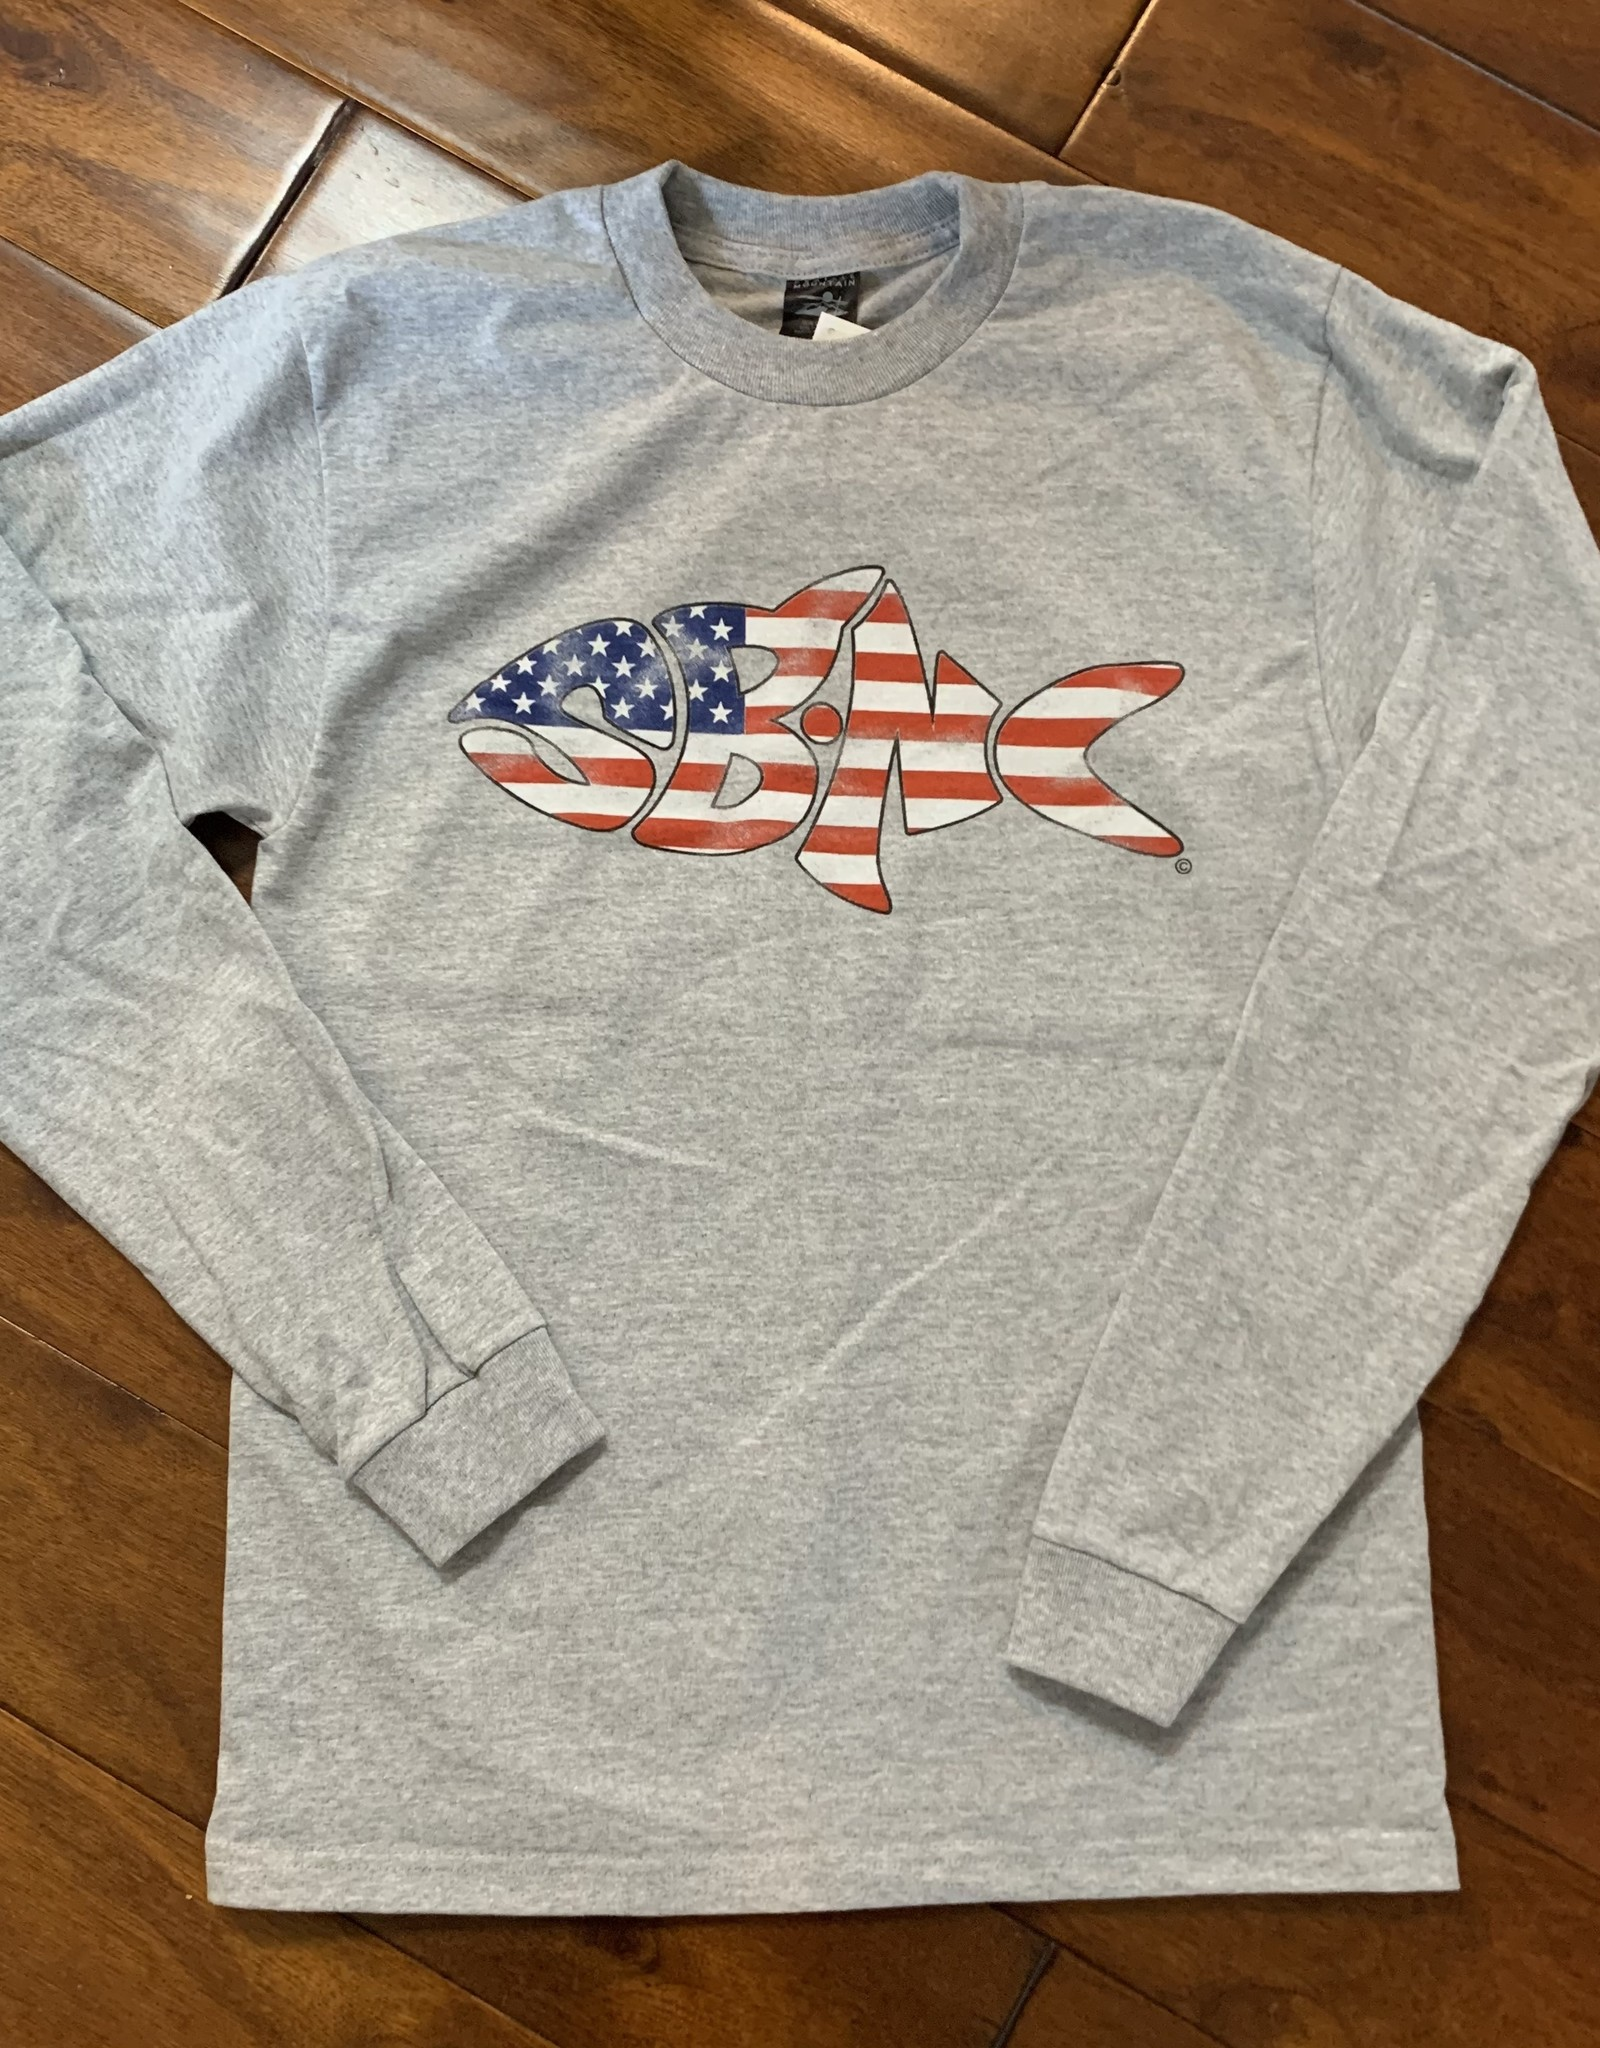 SBNC FISH USA LS